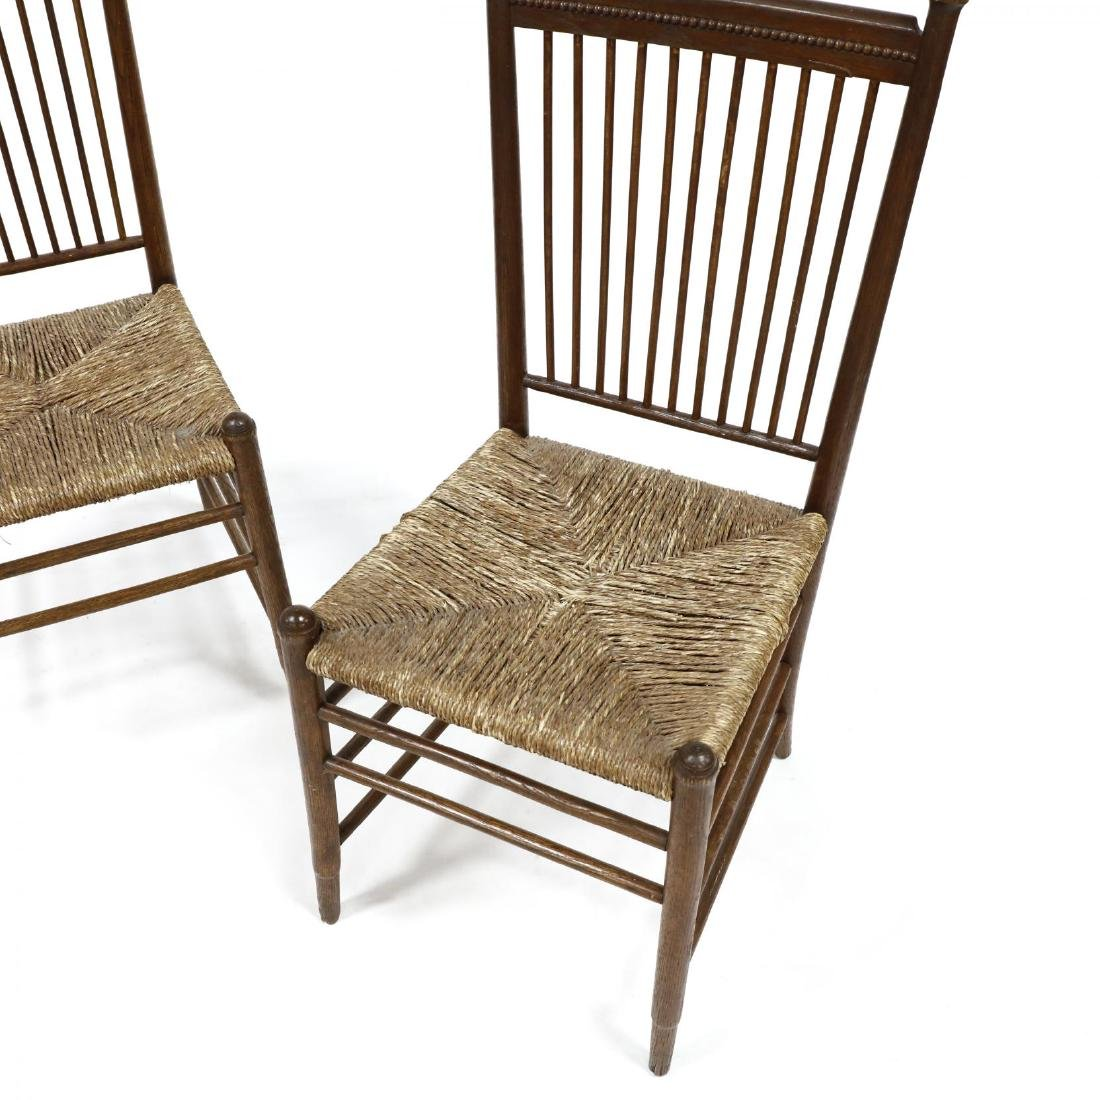 Pair of Antique Oak Spindle Back Chairs - 2